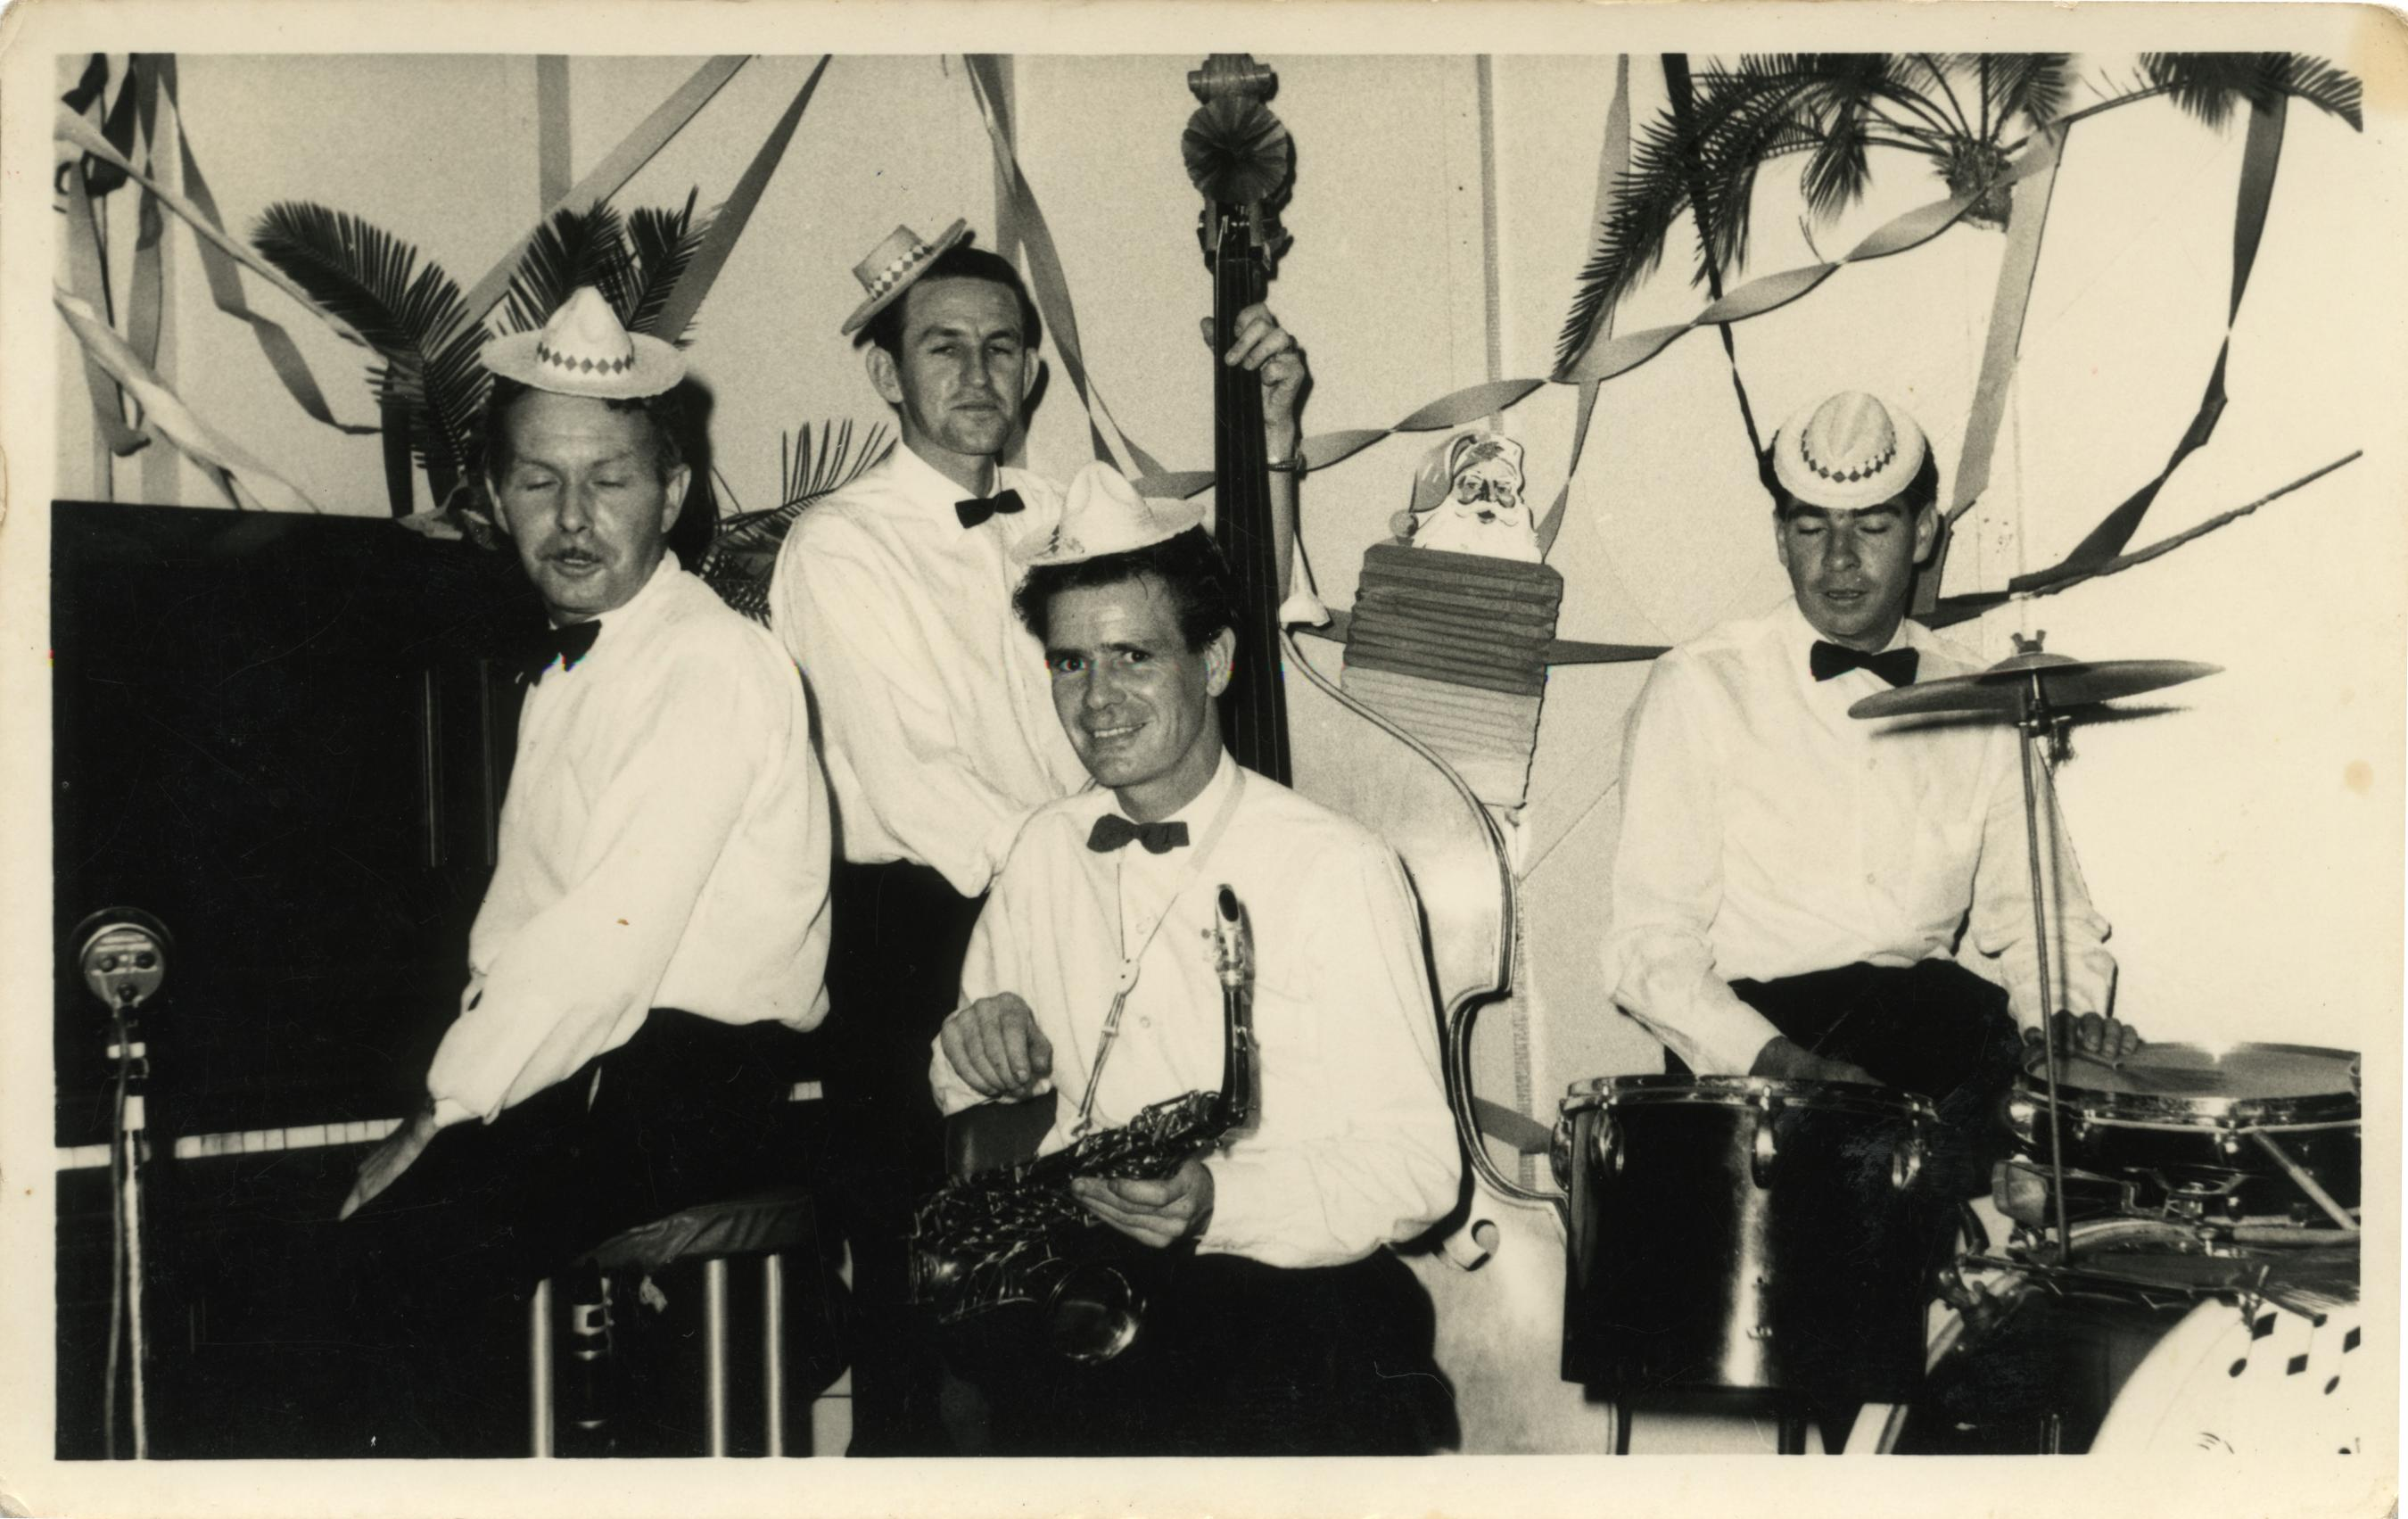 Black and white photo of four men dressing in white shirt and bow ties playing musical instruments. in